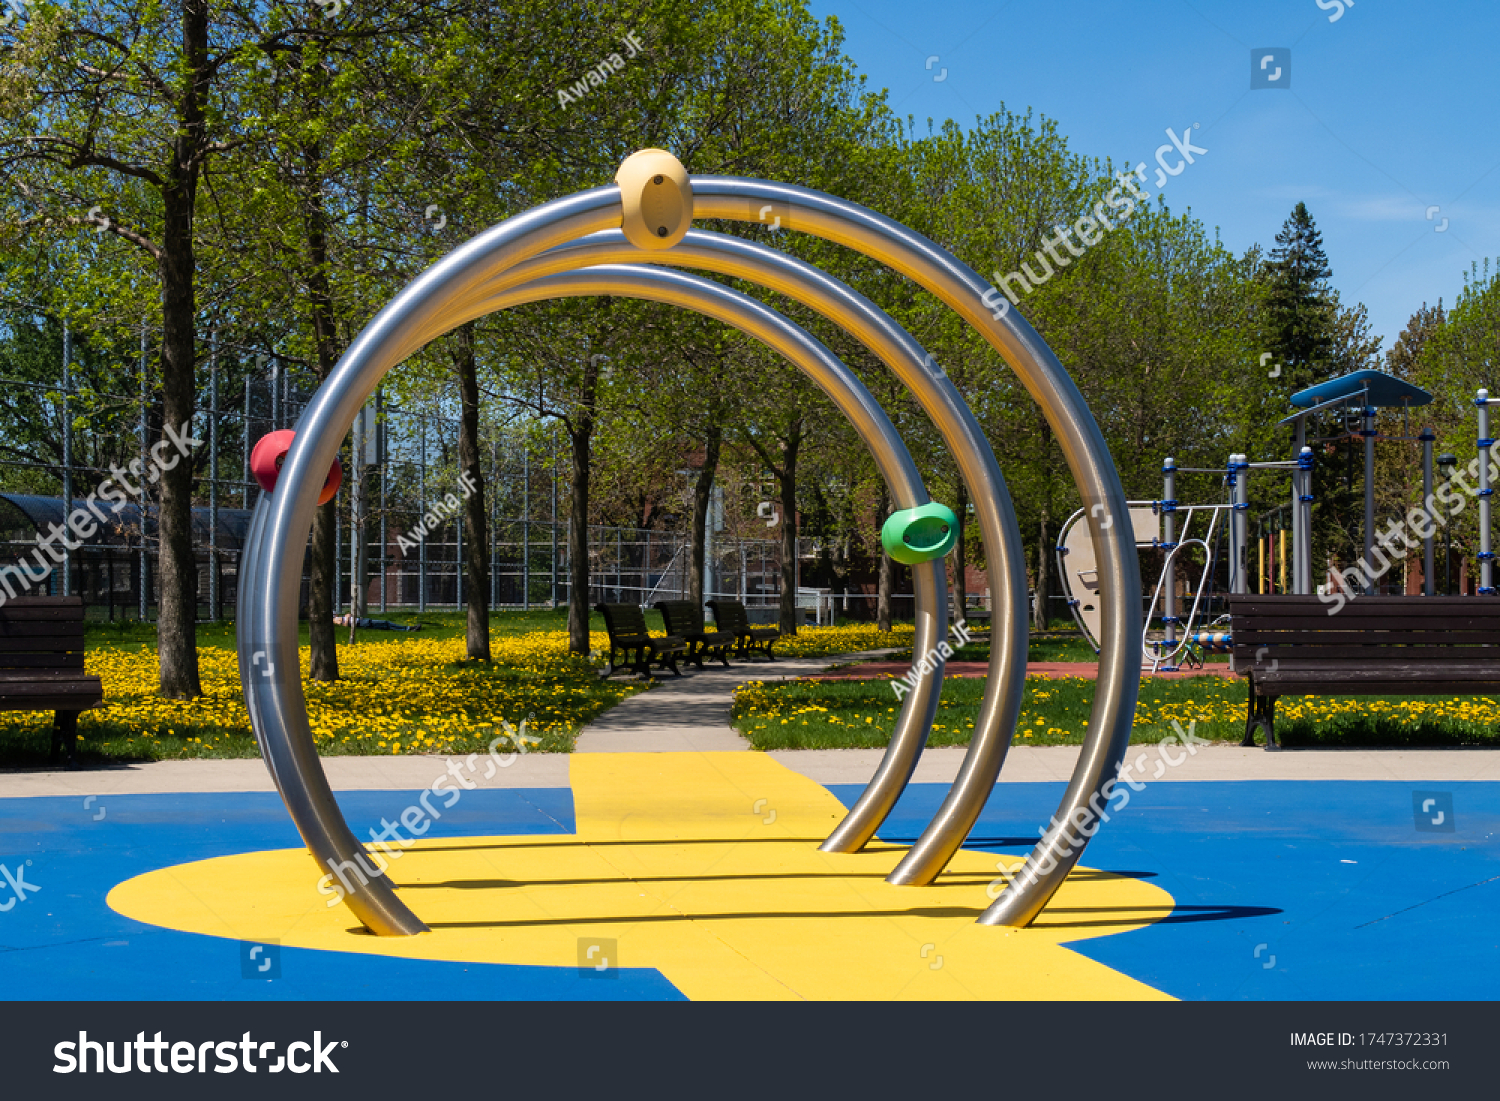 stock-photo-montreal-canada-may-playgrou